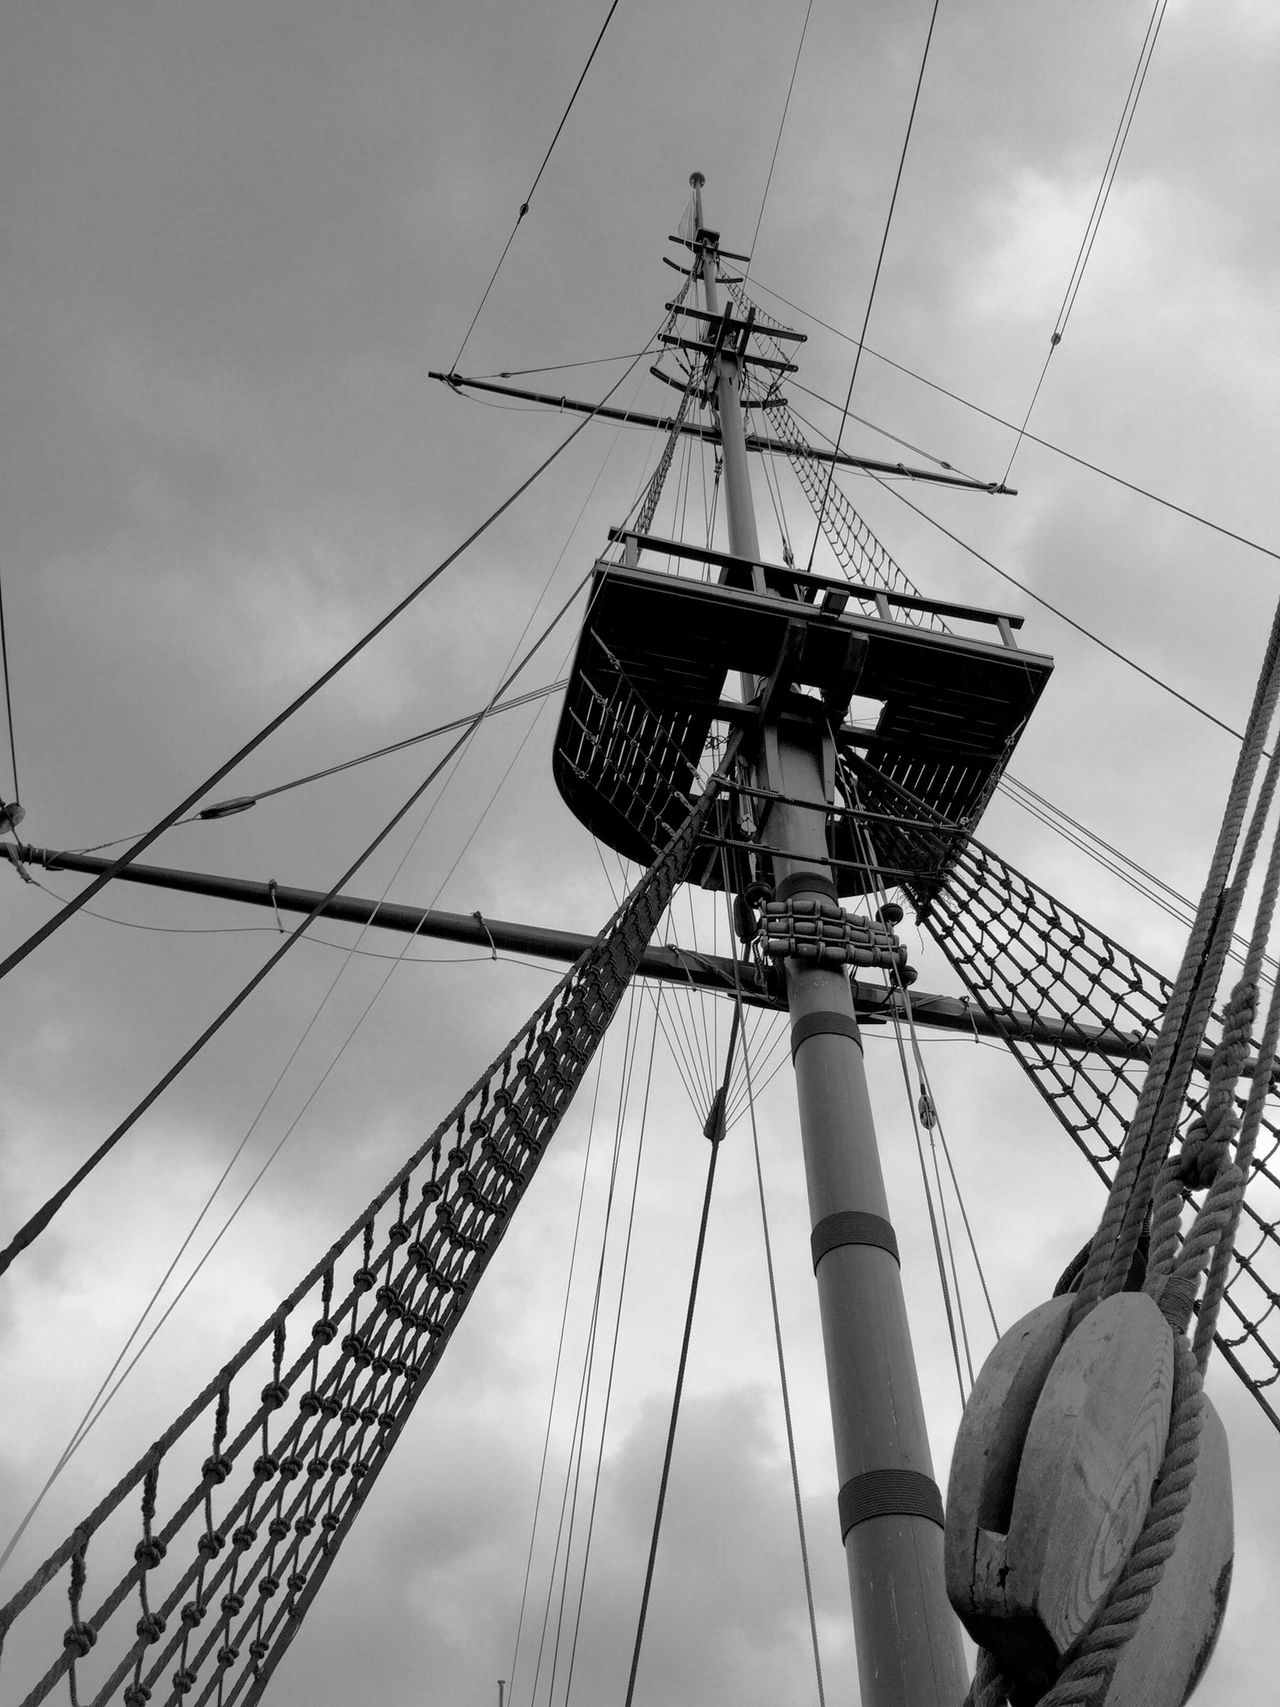 Mast Blackandwhite Black And White Ship Boat Sailing Sail Sail Away, Sail Away Check This Out Pirate Ship Pirate Water Wind Monochrome Monochrome Photography Welcome To Black History Historical Place Ships Shipping  Nautical Nautical Vessel Sailboat Sailing Ship Sailing Boat